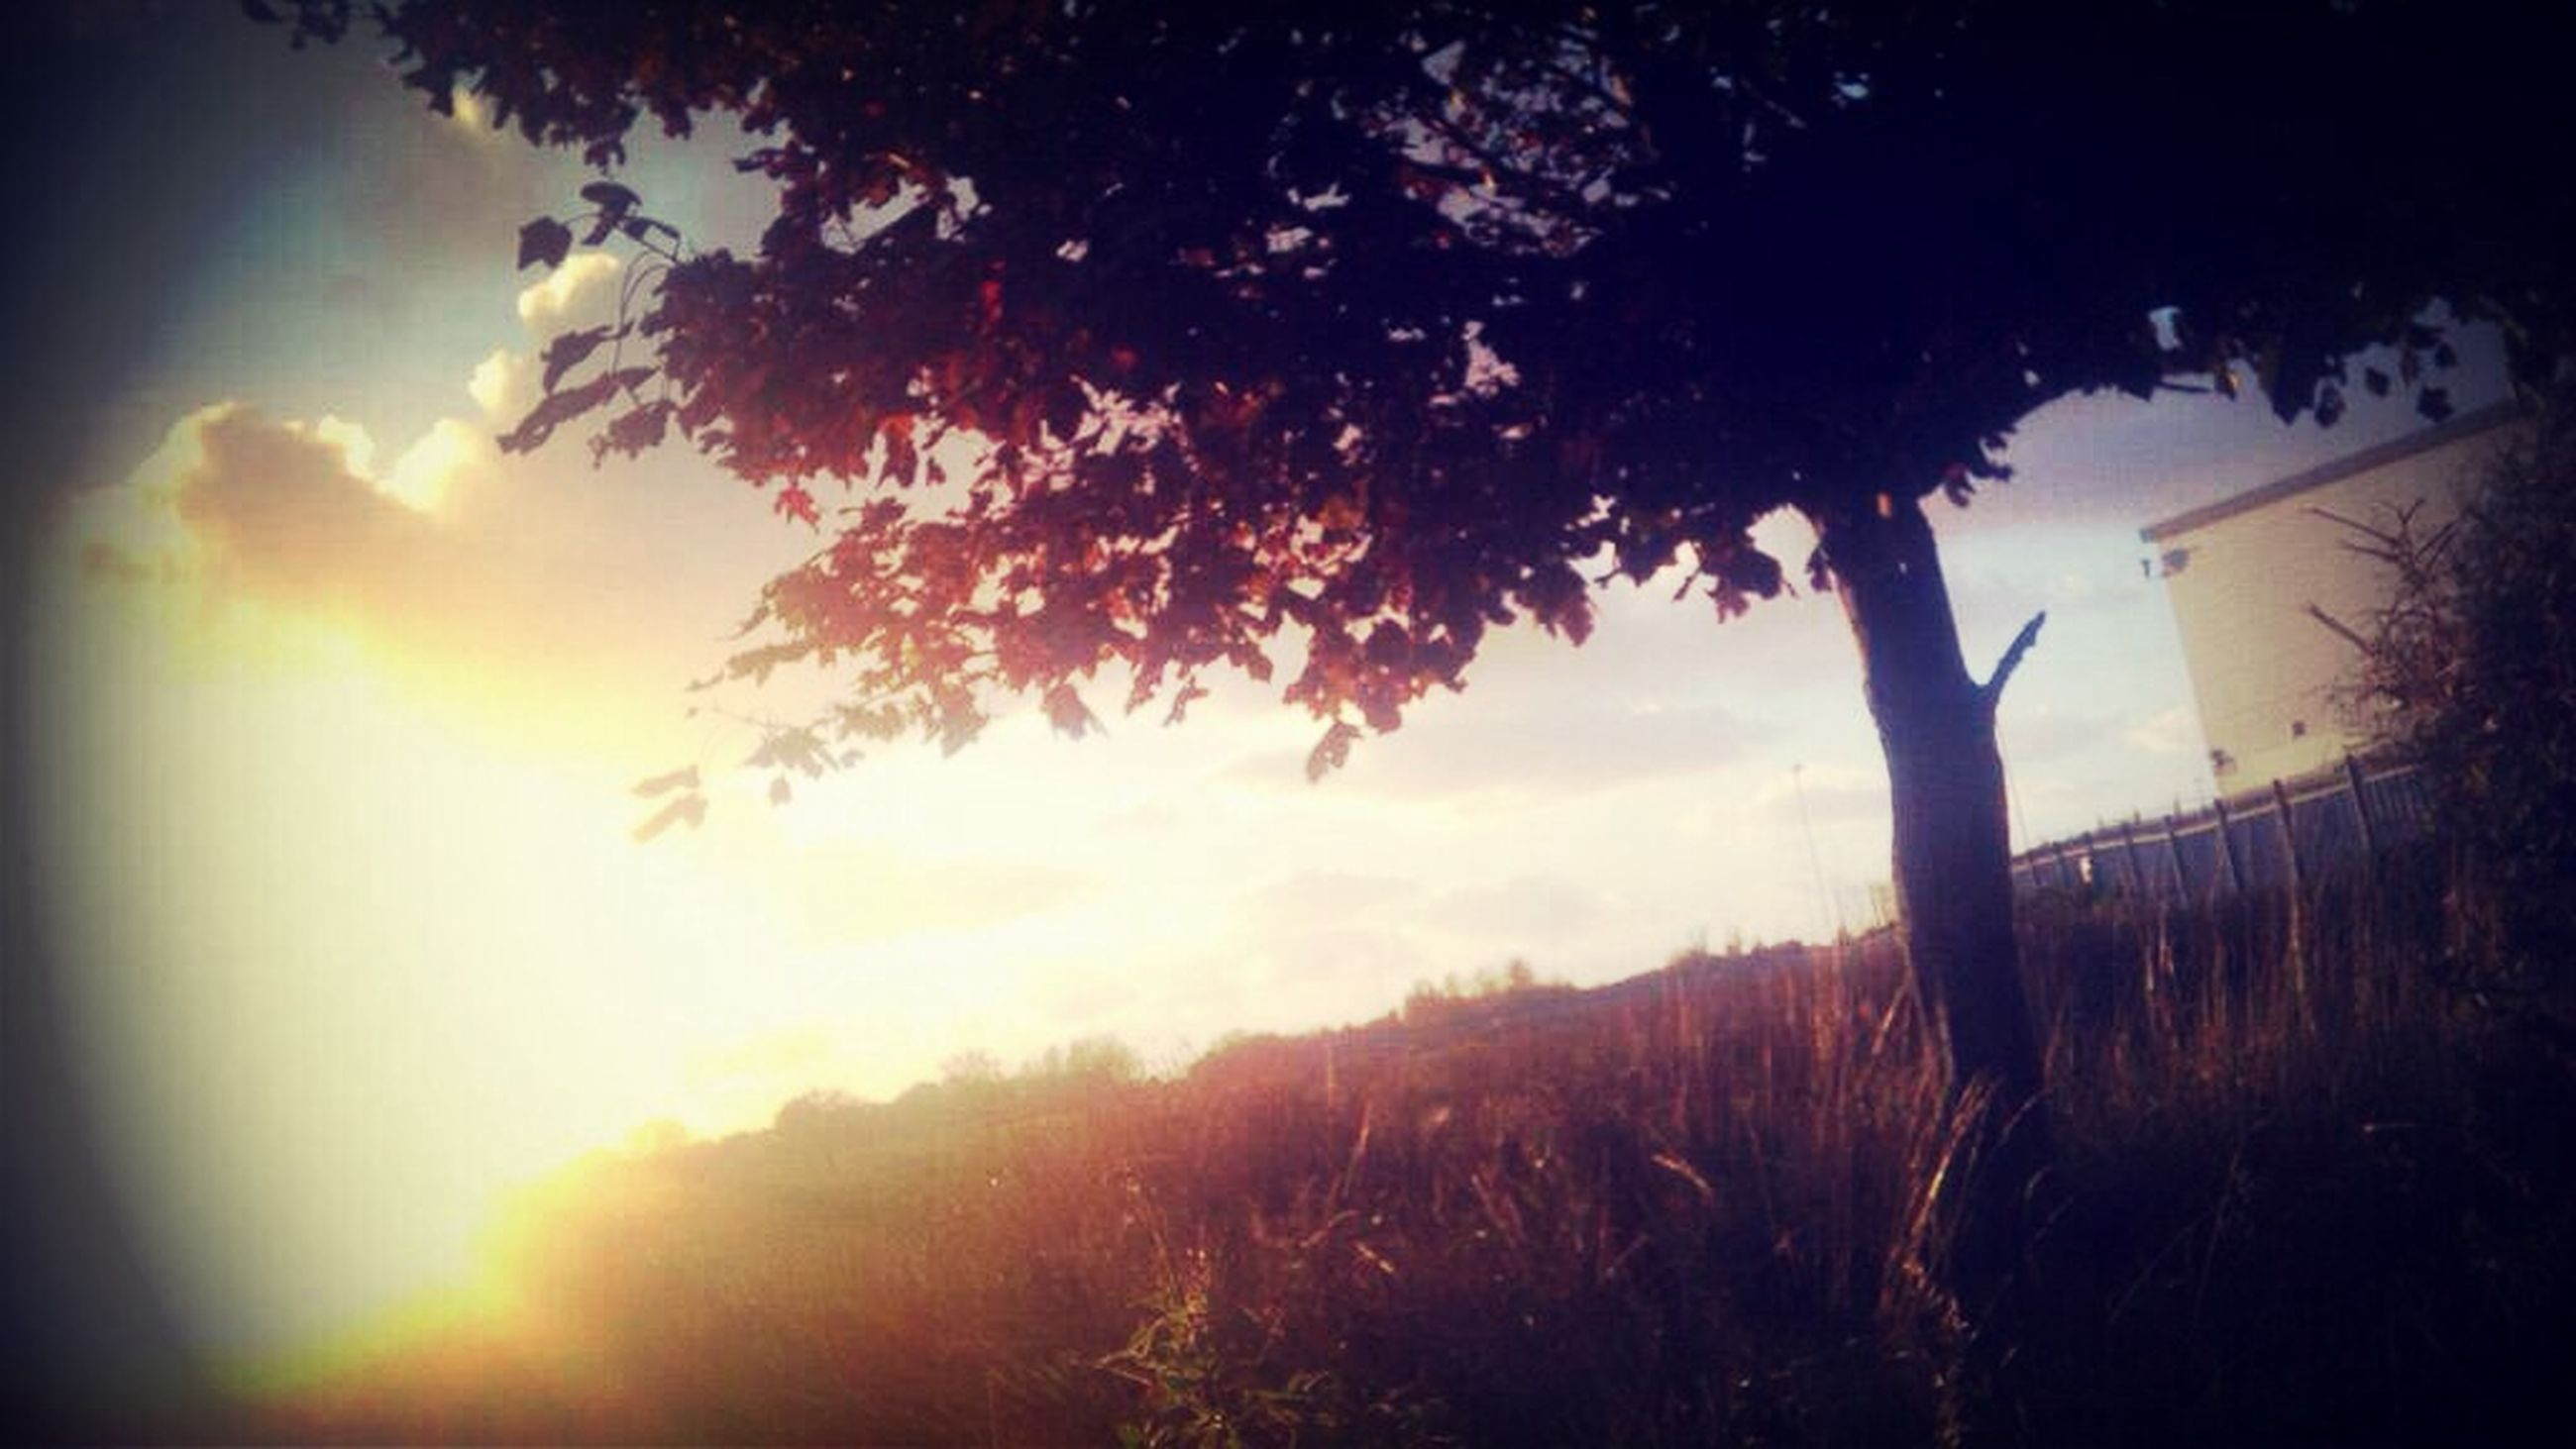 sun, sunset, tree, silhouette, growth, tranquility, sunlight, beauty in nature, sunbeam, sky, nature, tranquil scene, lens flare, scenics, field, branch, back lit, plant, low angle view, landscape